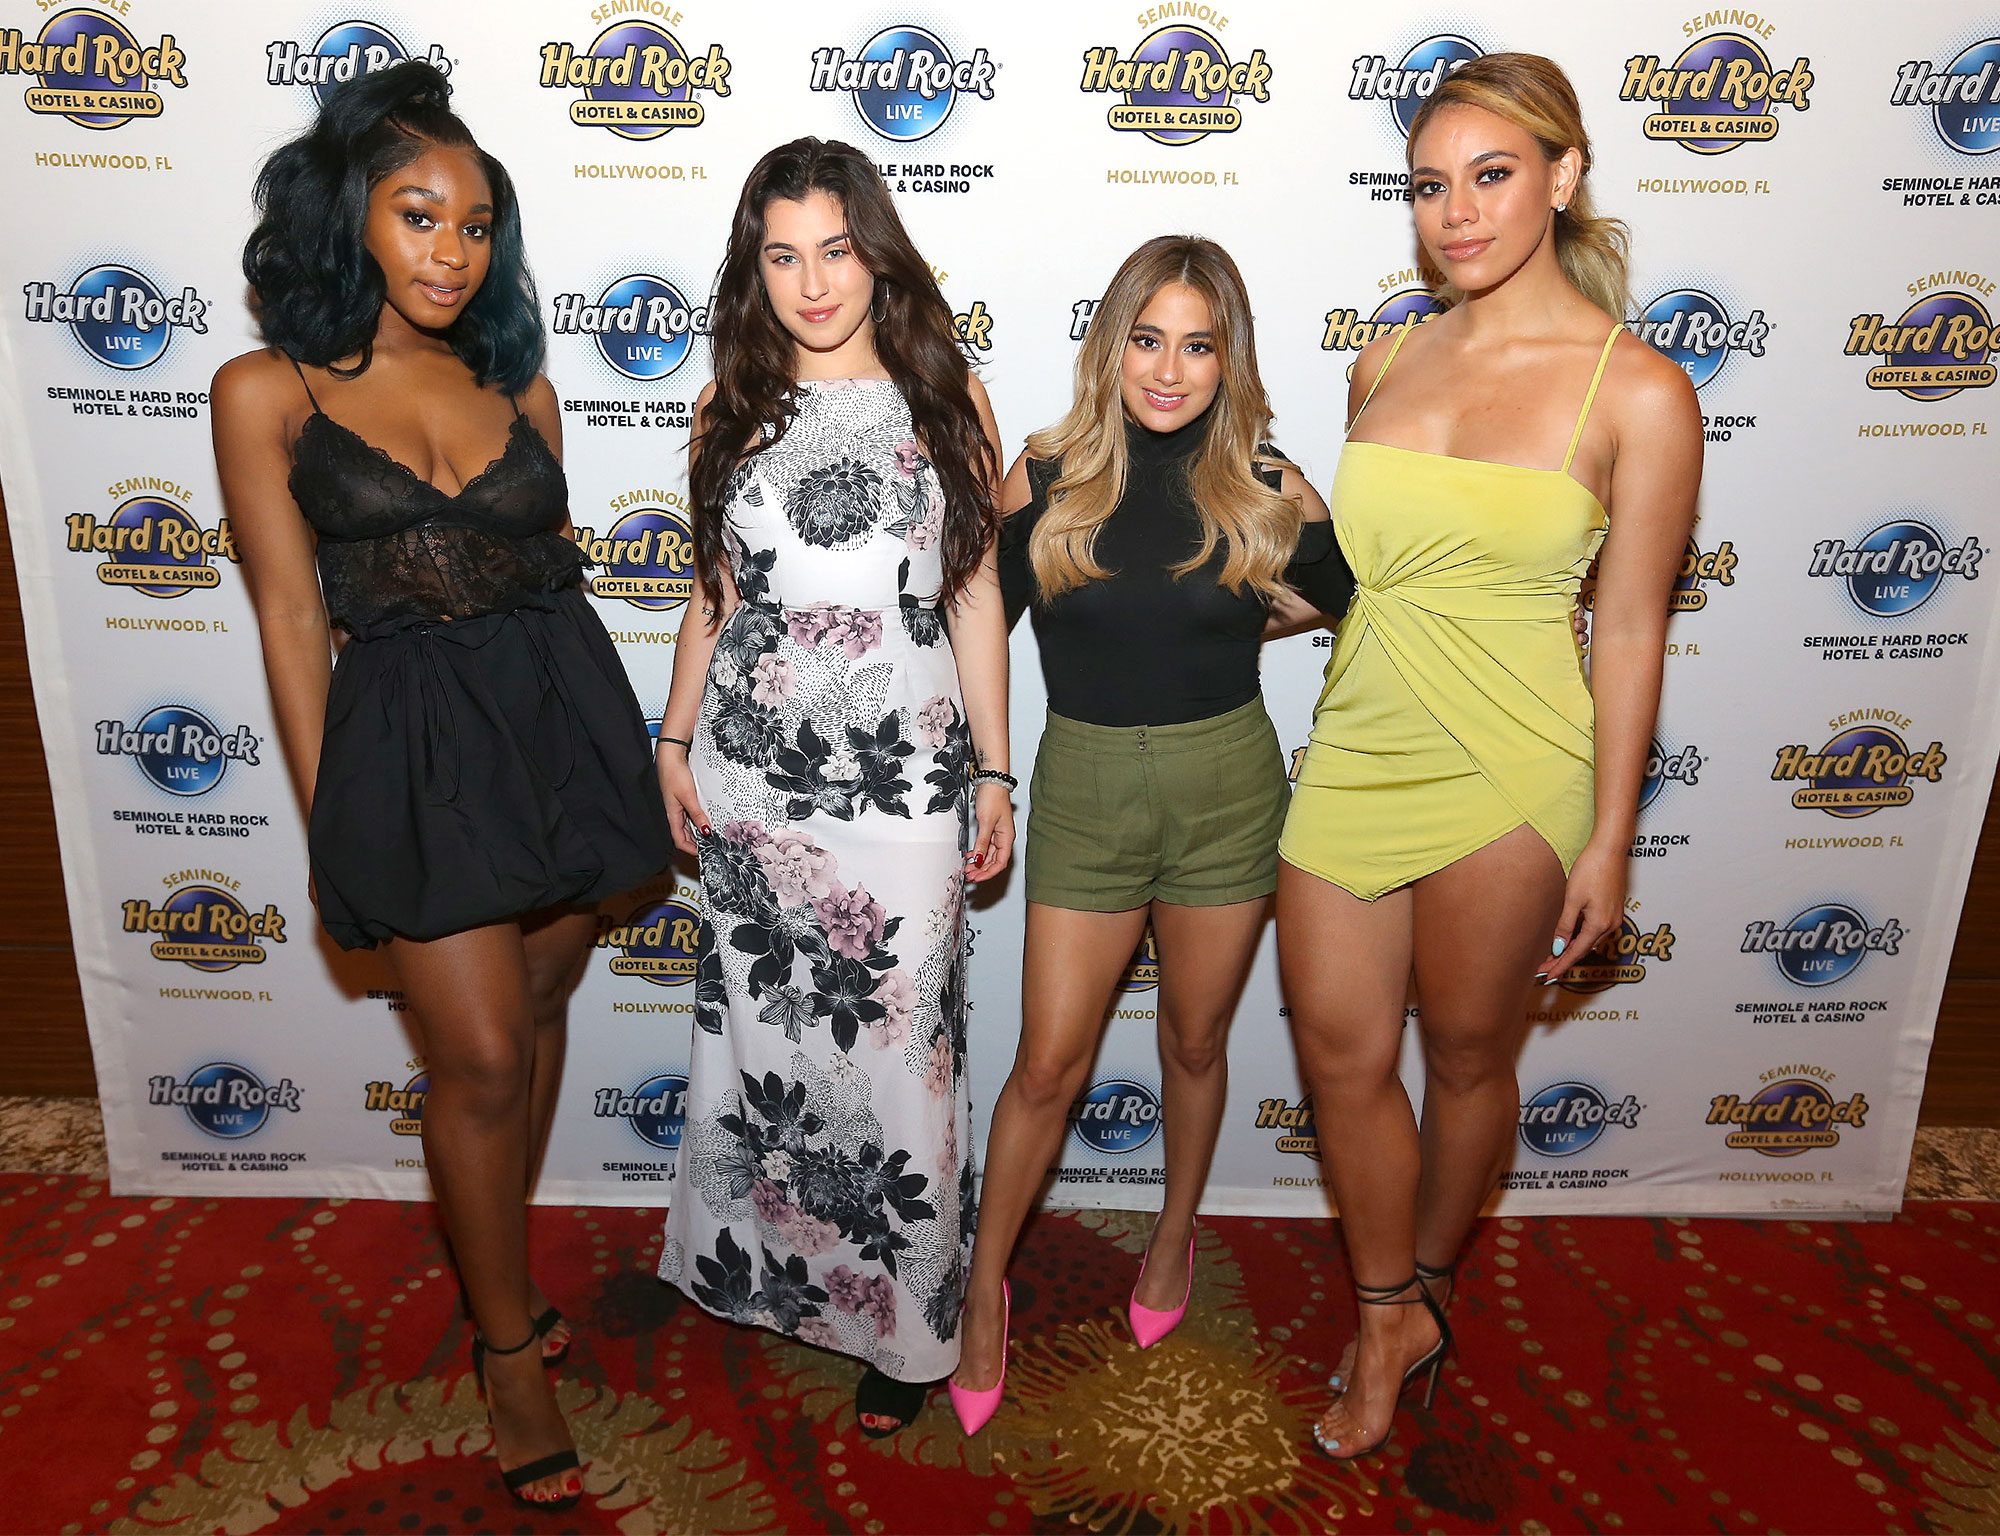 Fifth Harmony poses for a photo prior to performing for the last time in the United States  at  Seminole Hard Rock Hotel & Casino in Hollywood, FL